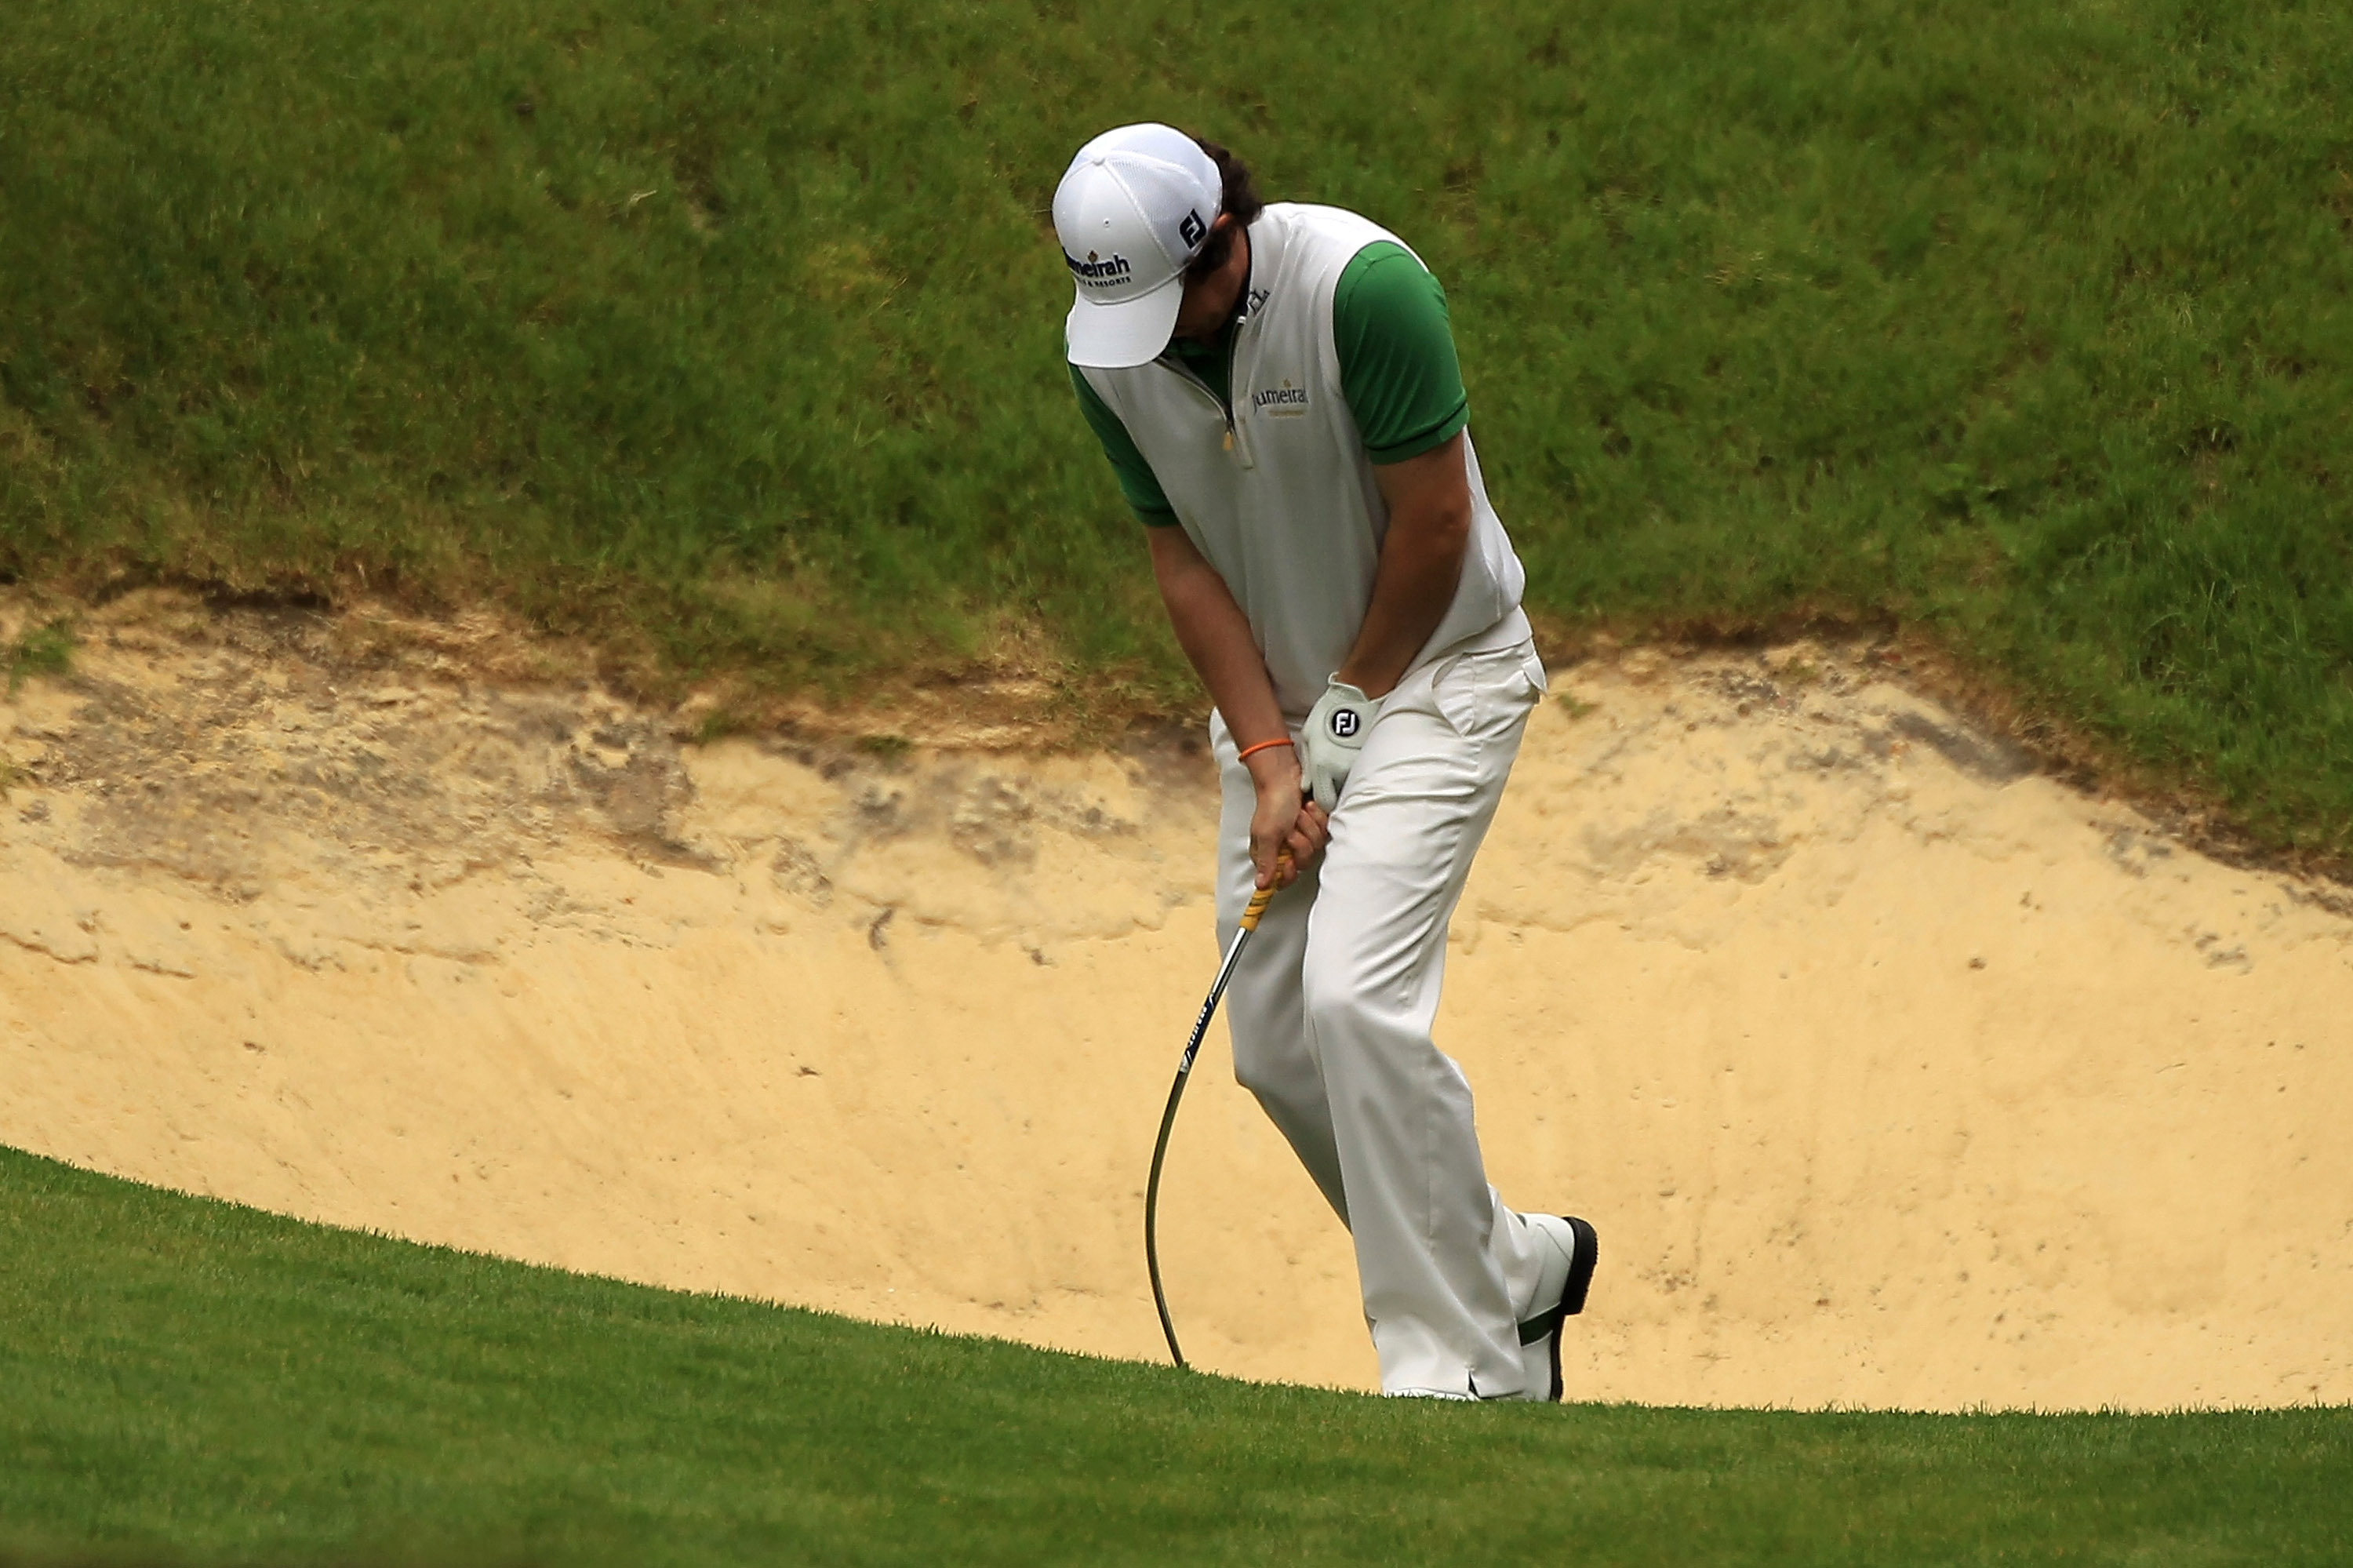 Rory McIlroy damages his club after getting stuck in the sand on the 10th hole.